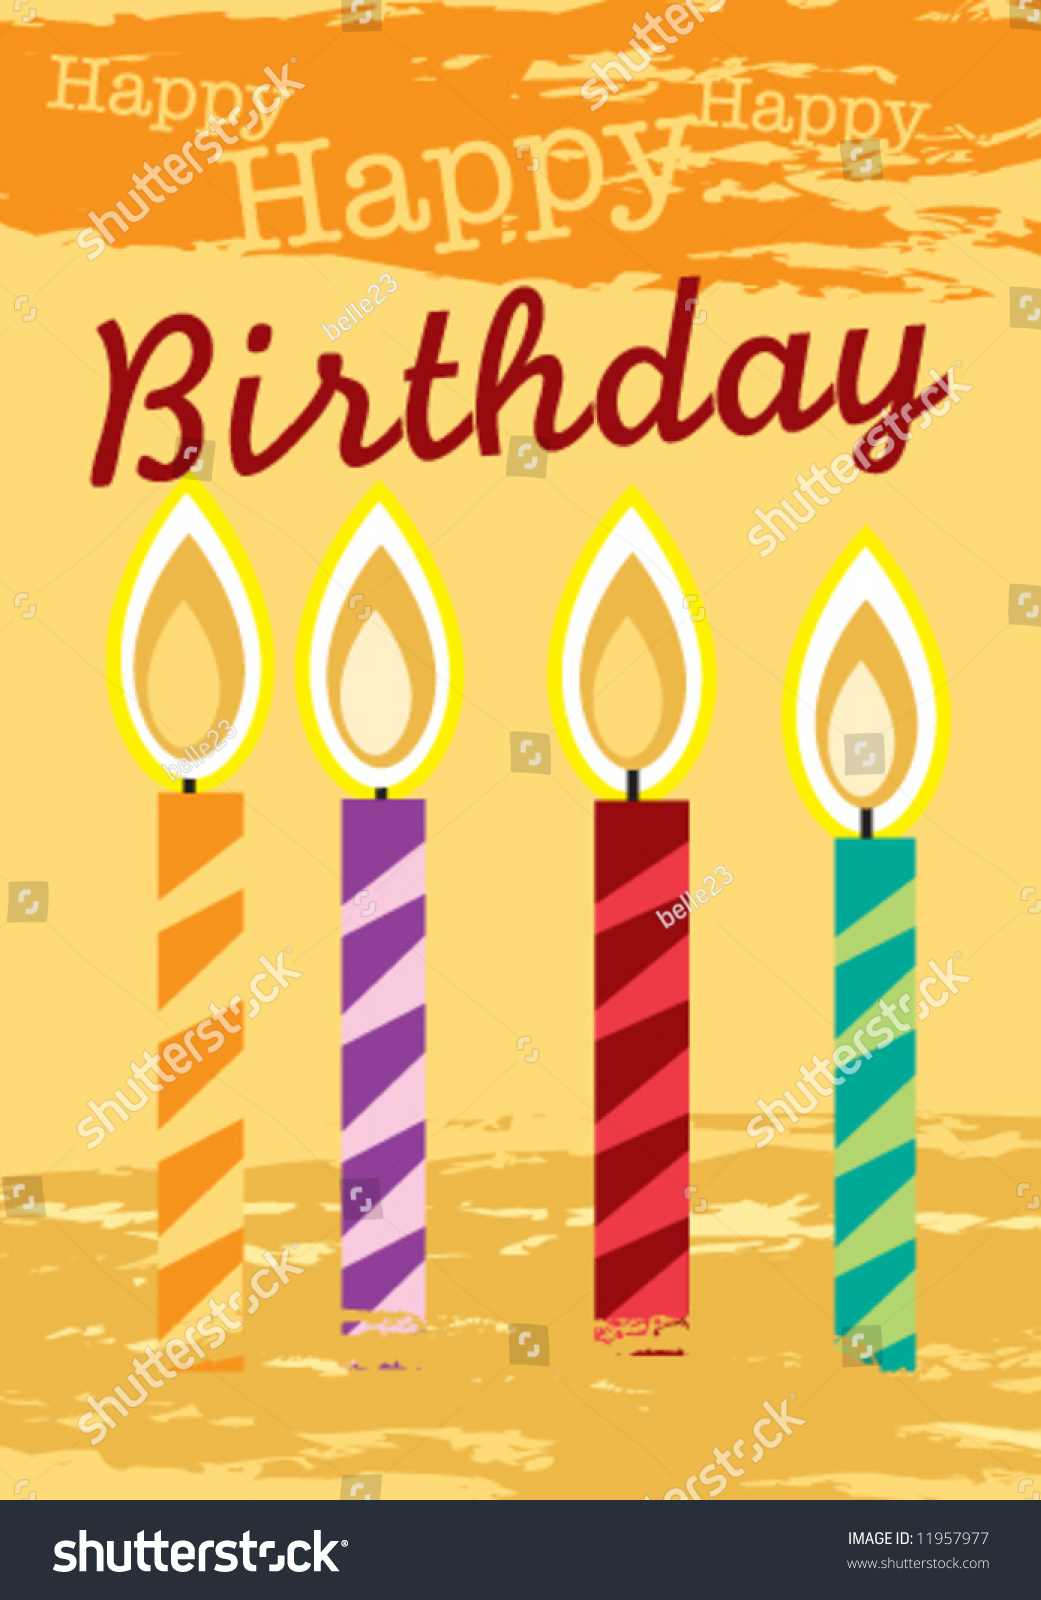 Vector birthday greeting card measures 48125 stock vector 11957977 vector birthday greeting card measures 48125 x 69375 m4hsunfo